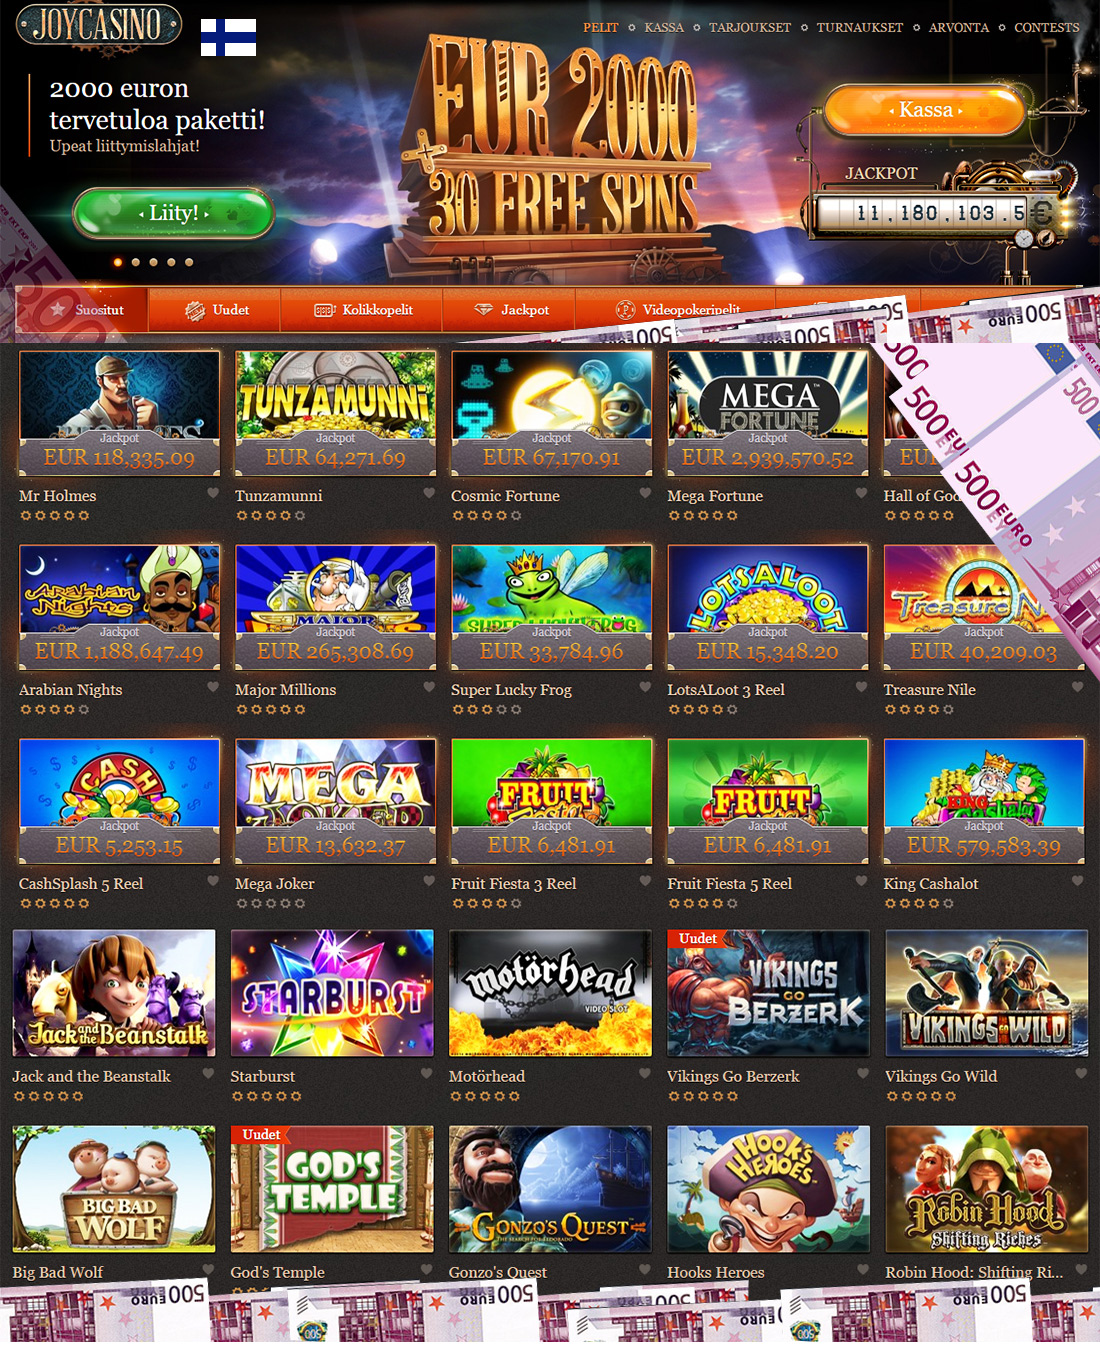 Online casino no deposit bonus us players